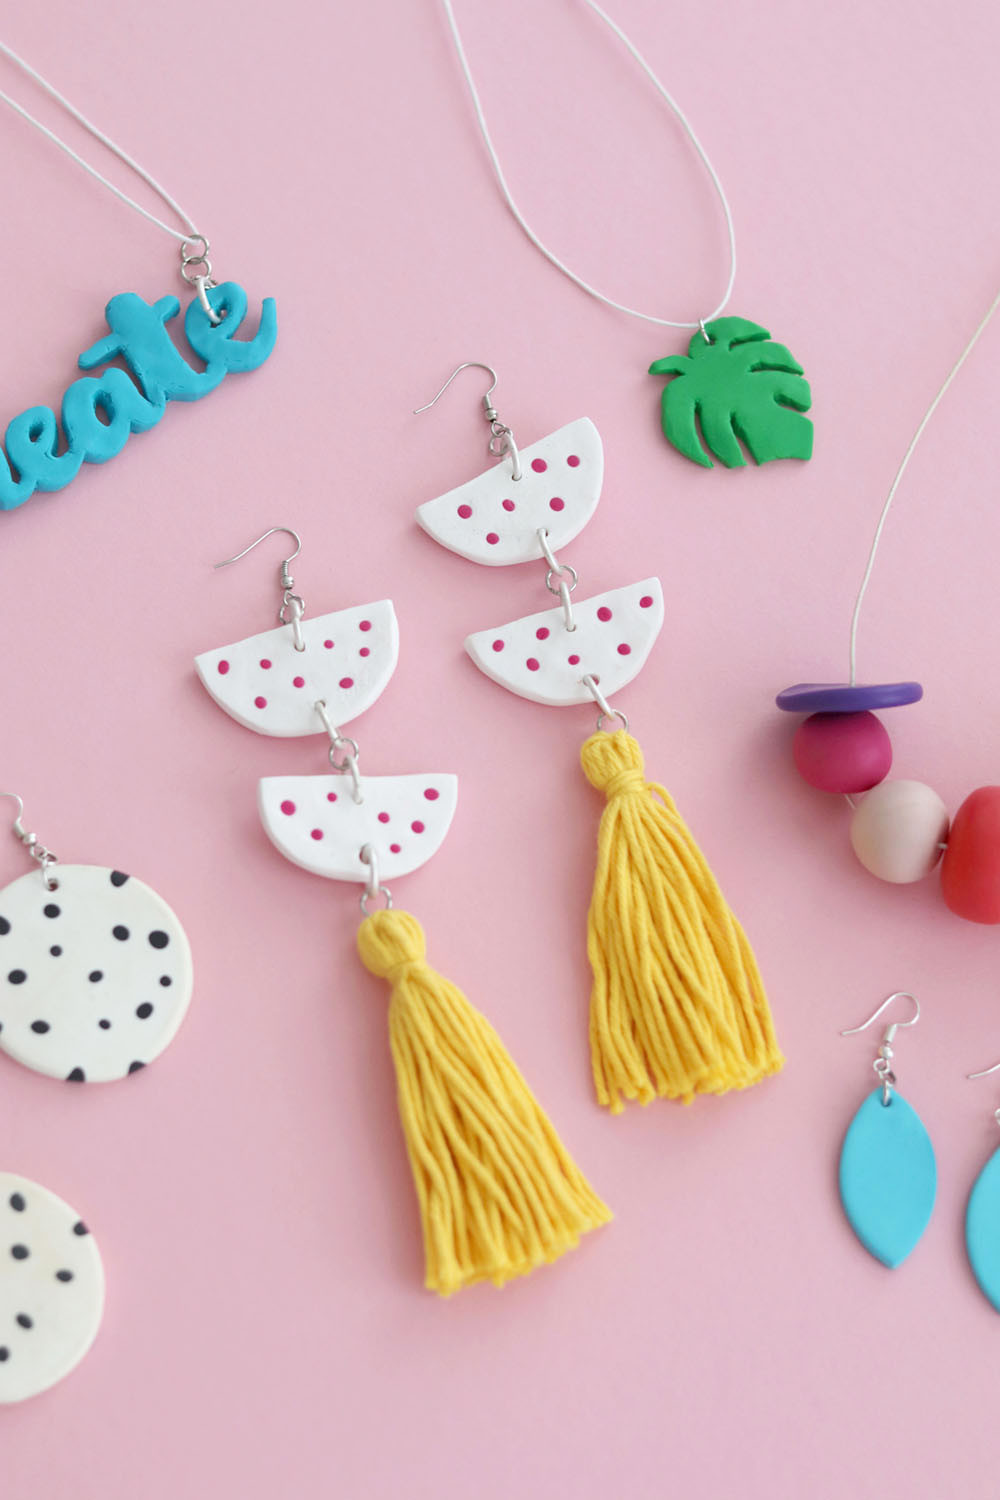 Diy Fimo  Luloveshandmade Crafts colors & everyday life happiness